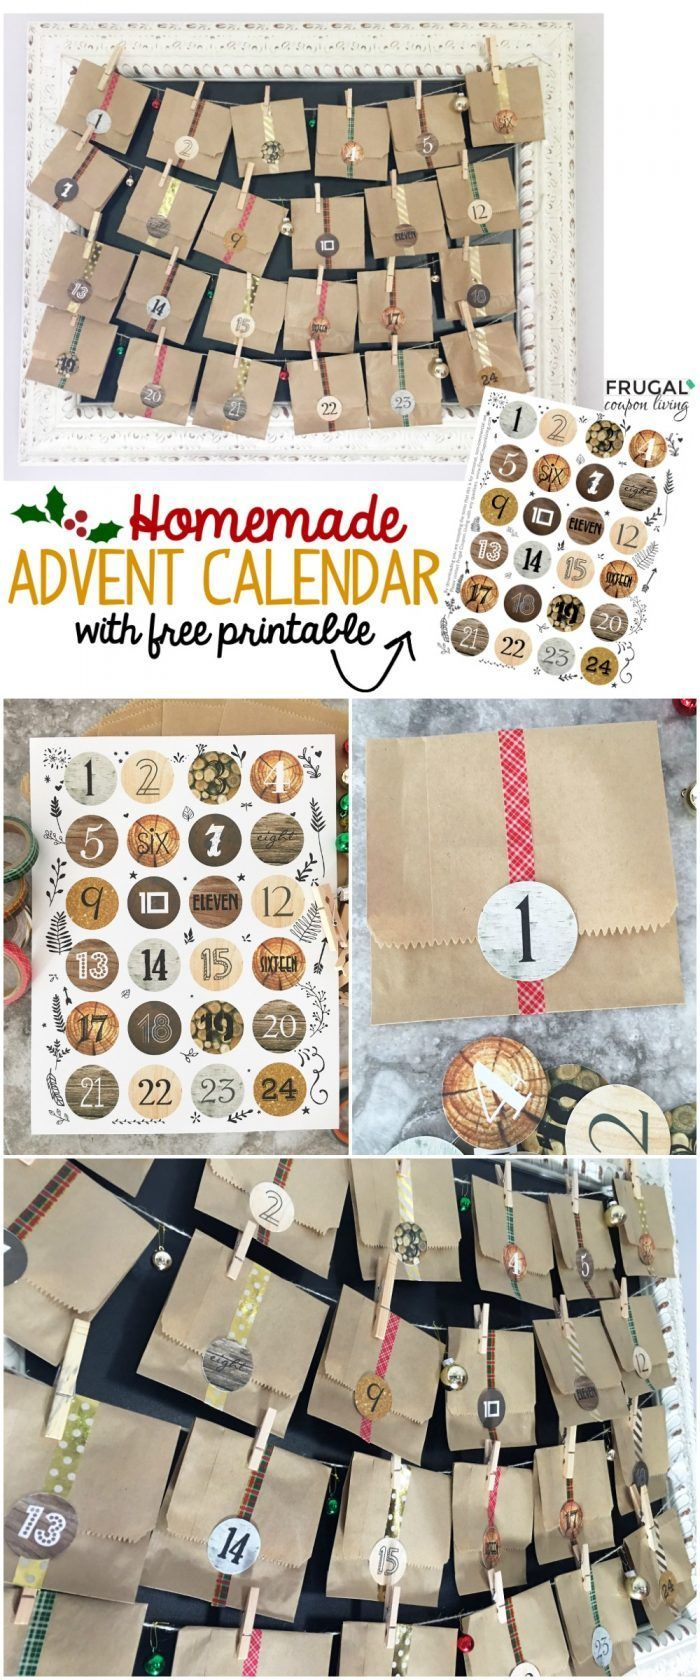 Homemade Calendar With Pictures : Best ideas about homemade advent calendars on pinterest